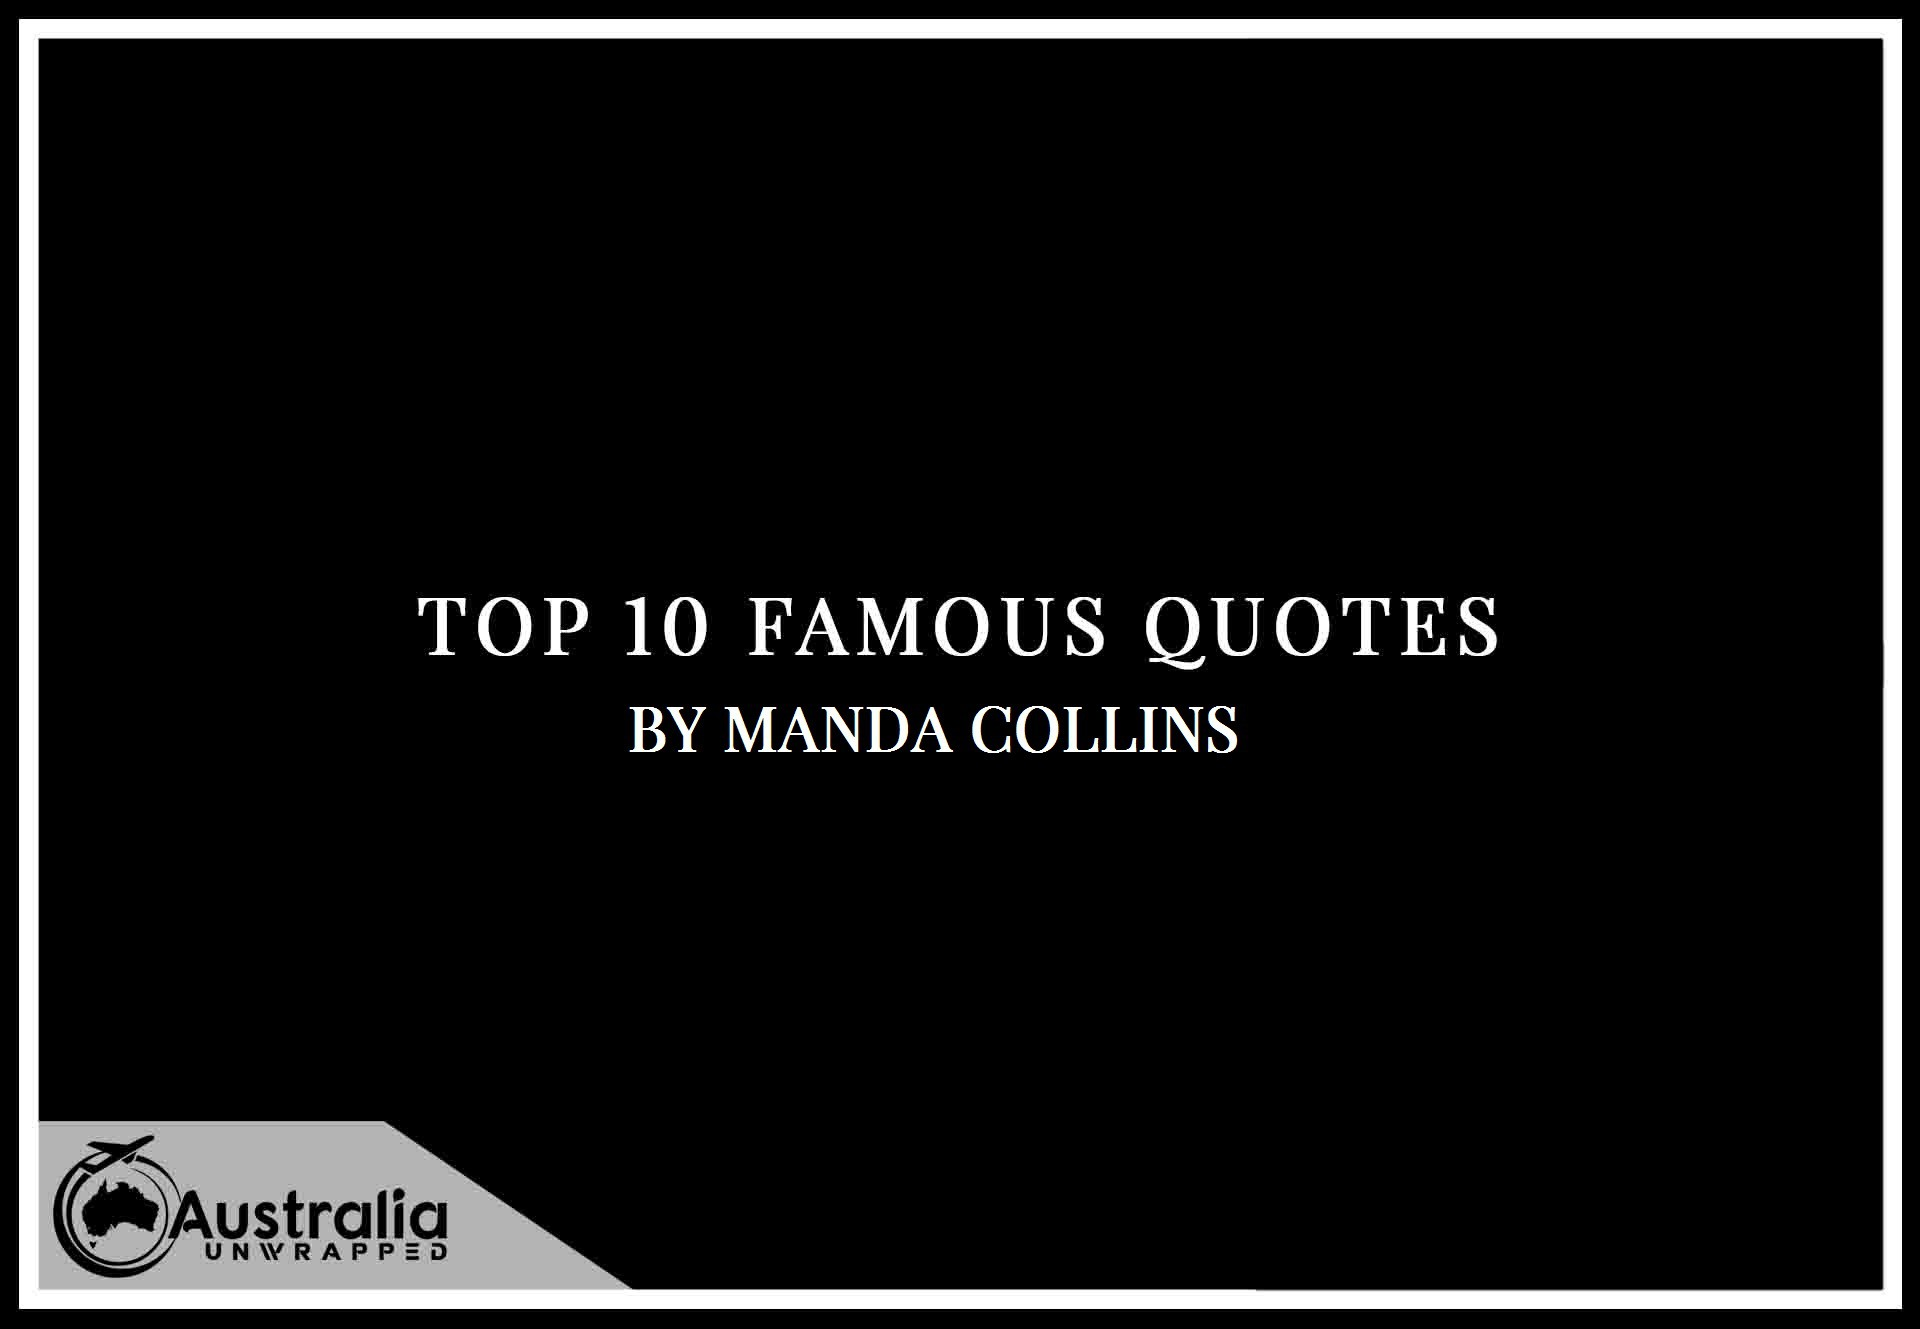 Manda Collins's Top 10 Popular and Famous Quotes